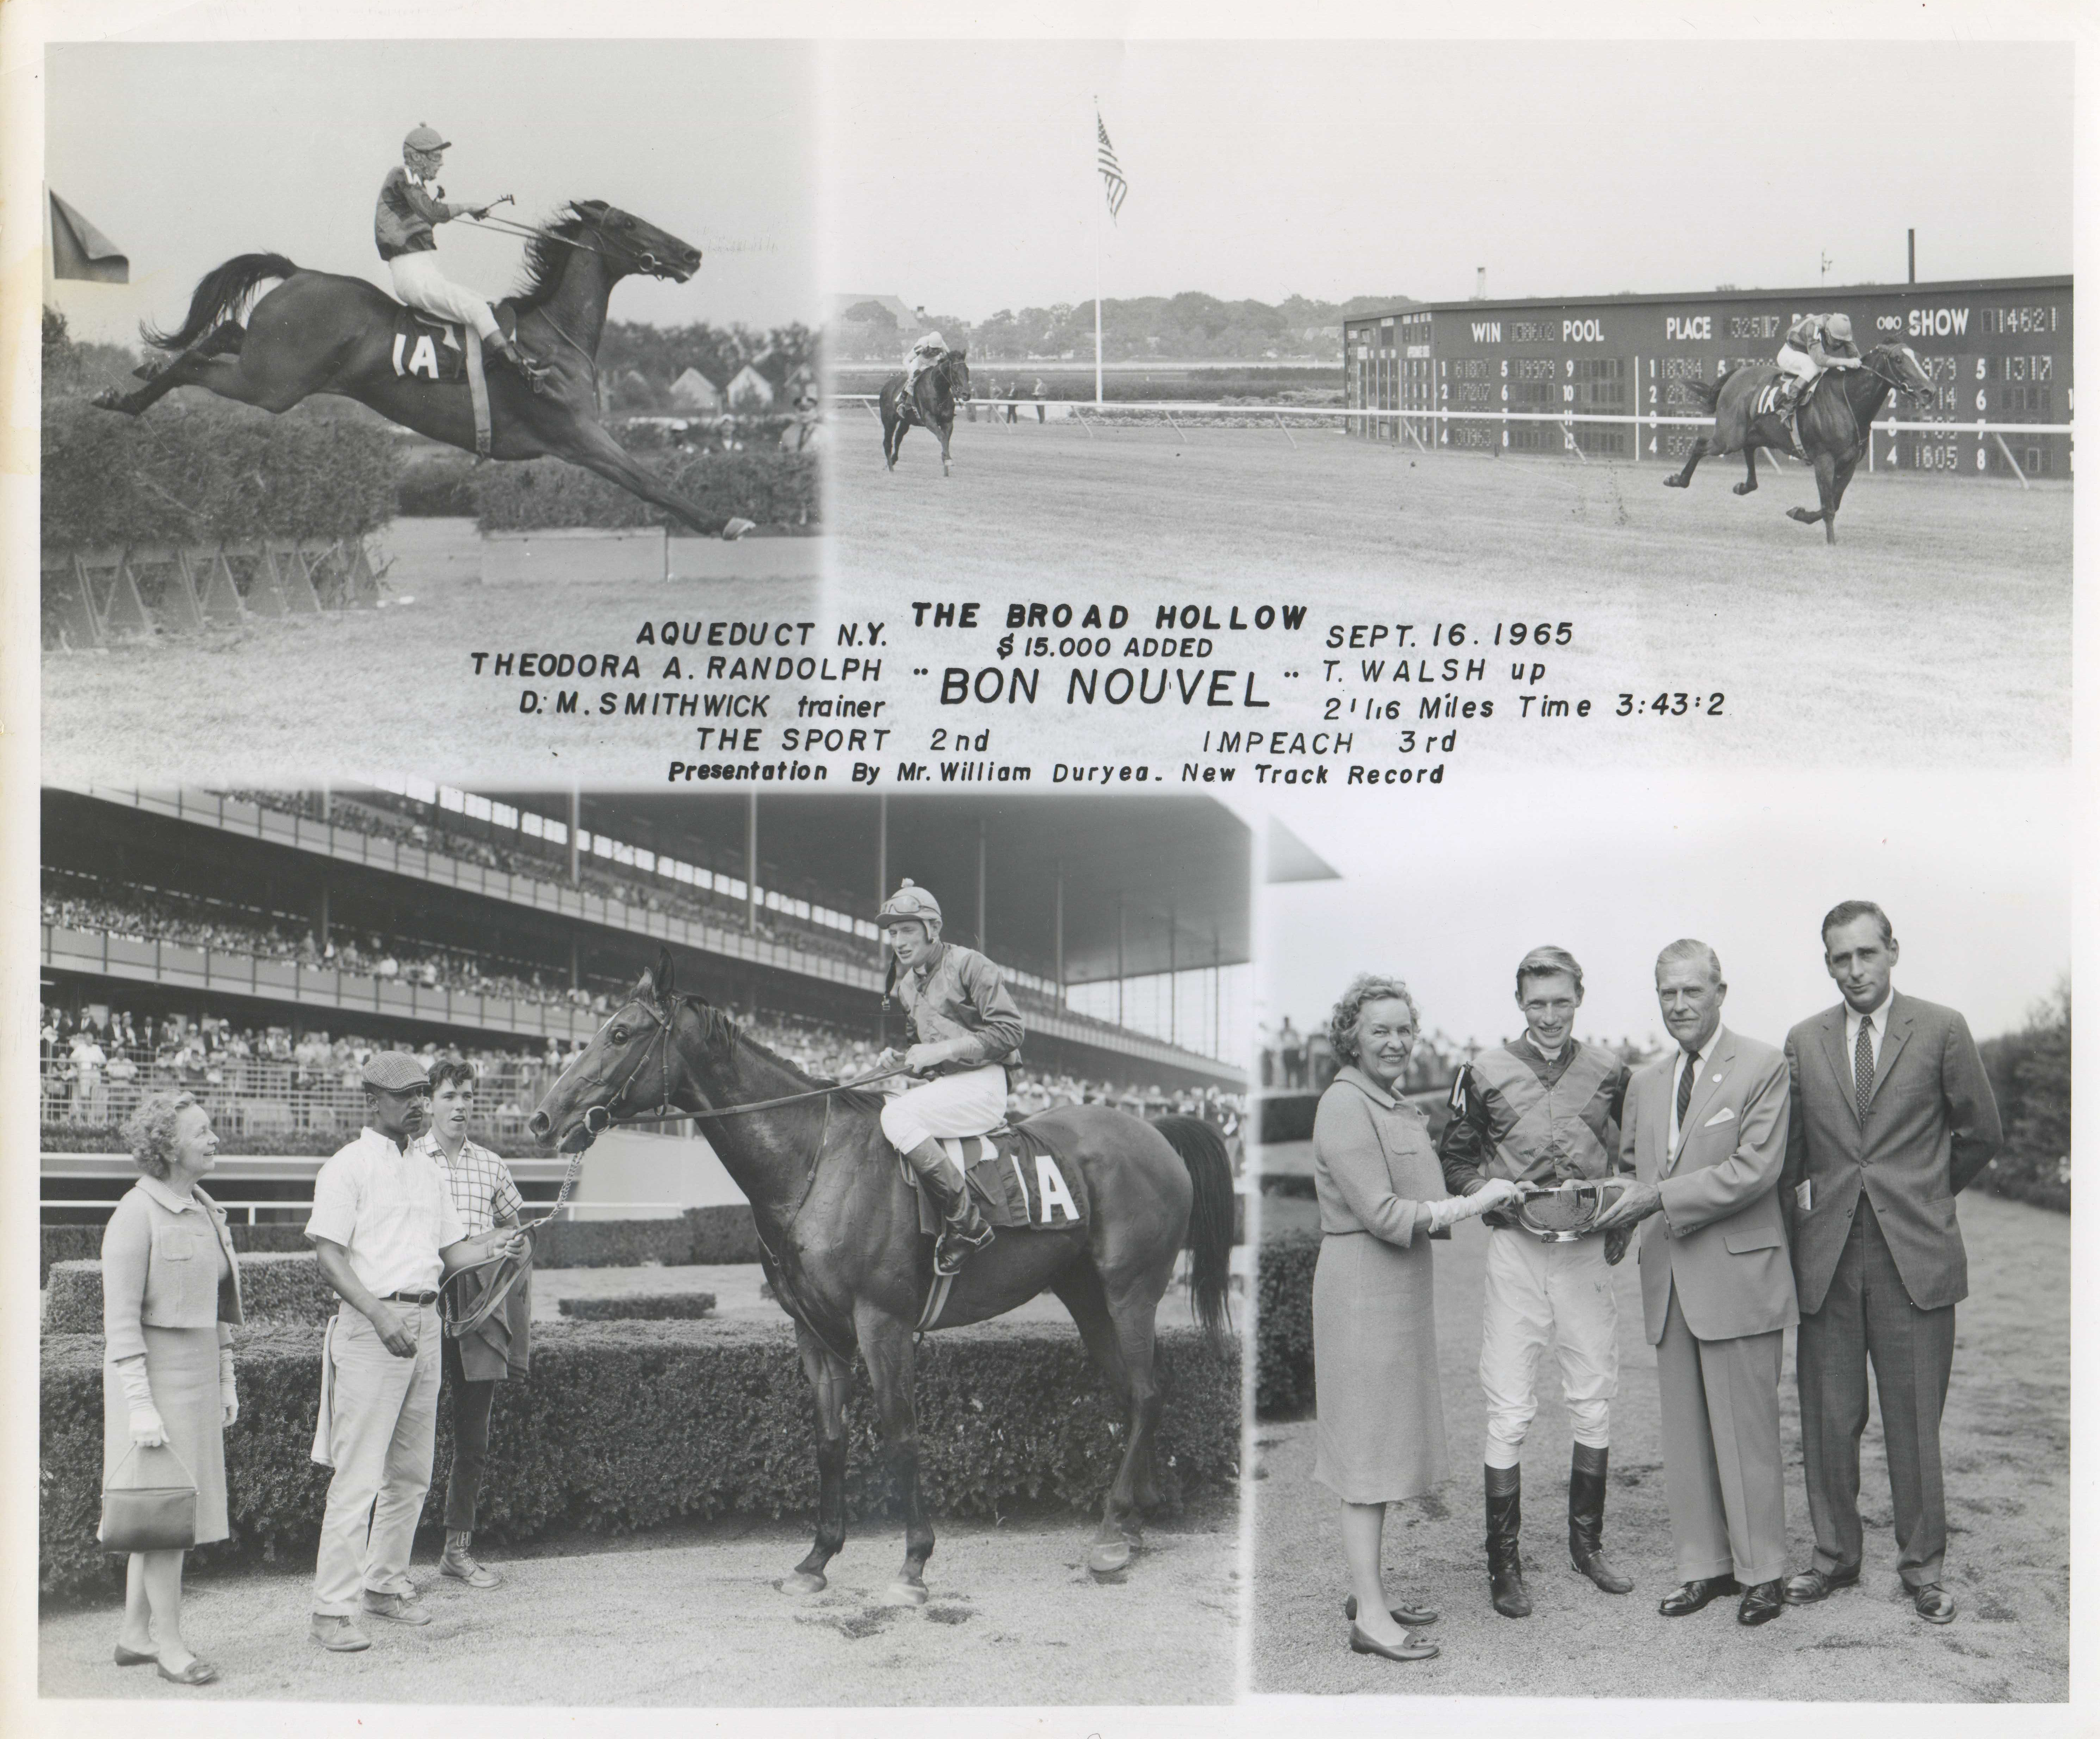 Win composite photograph for the 1965 Broad Hollow Steeplechase (NYRA/Museum Collection)